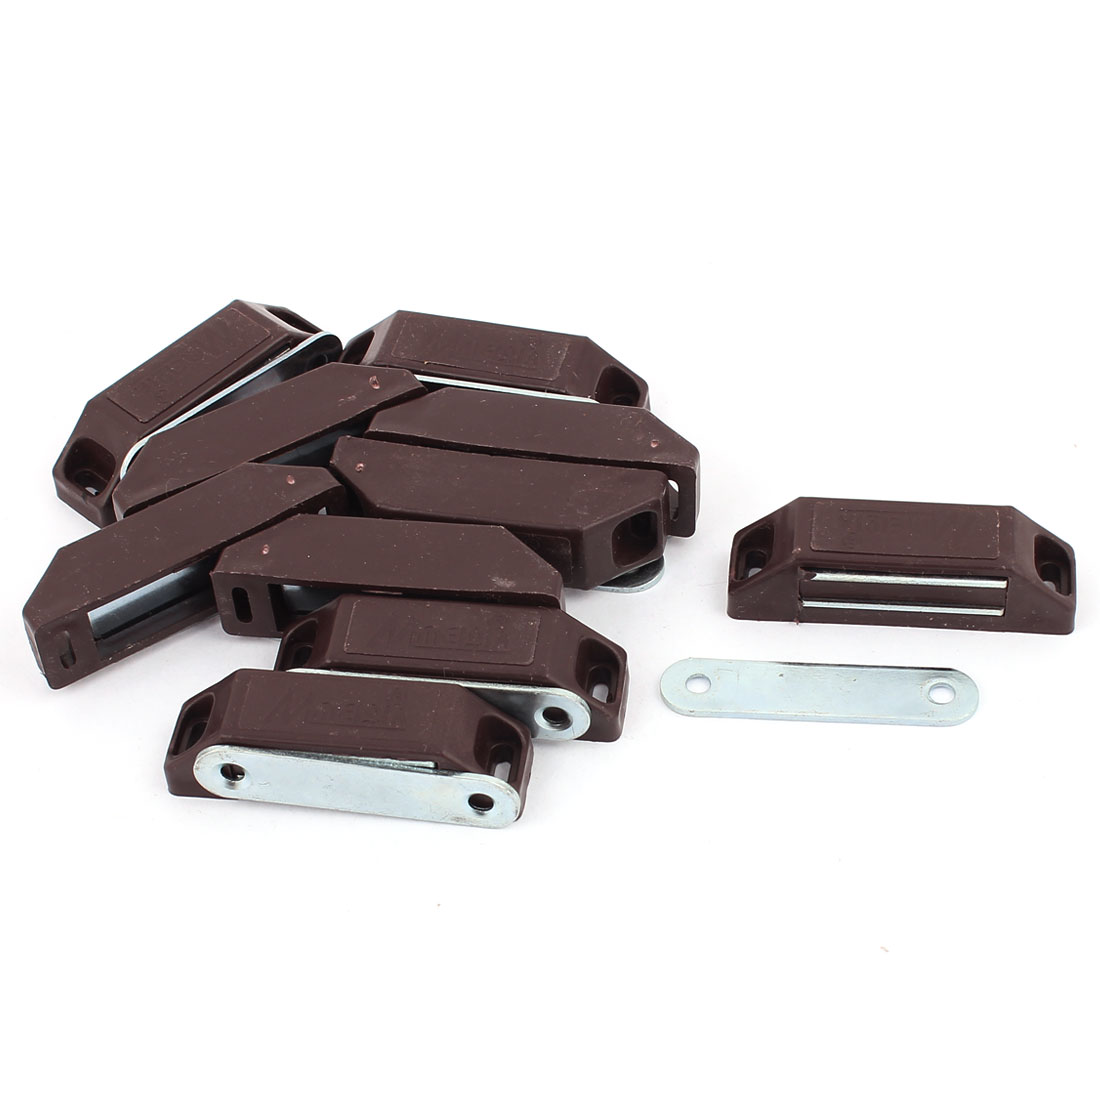 Cabinet Door Cupboard Plastic Shell Metal Plate Magnetic Latch Catch Brown 10PCS